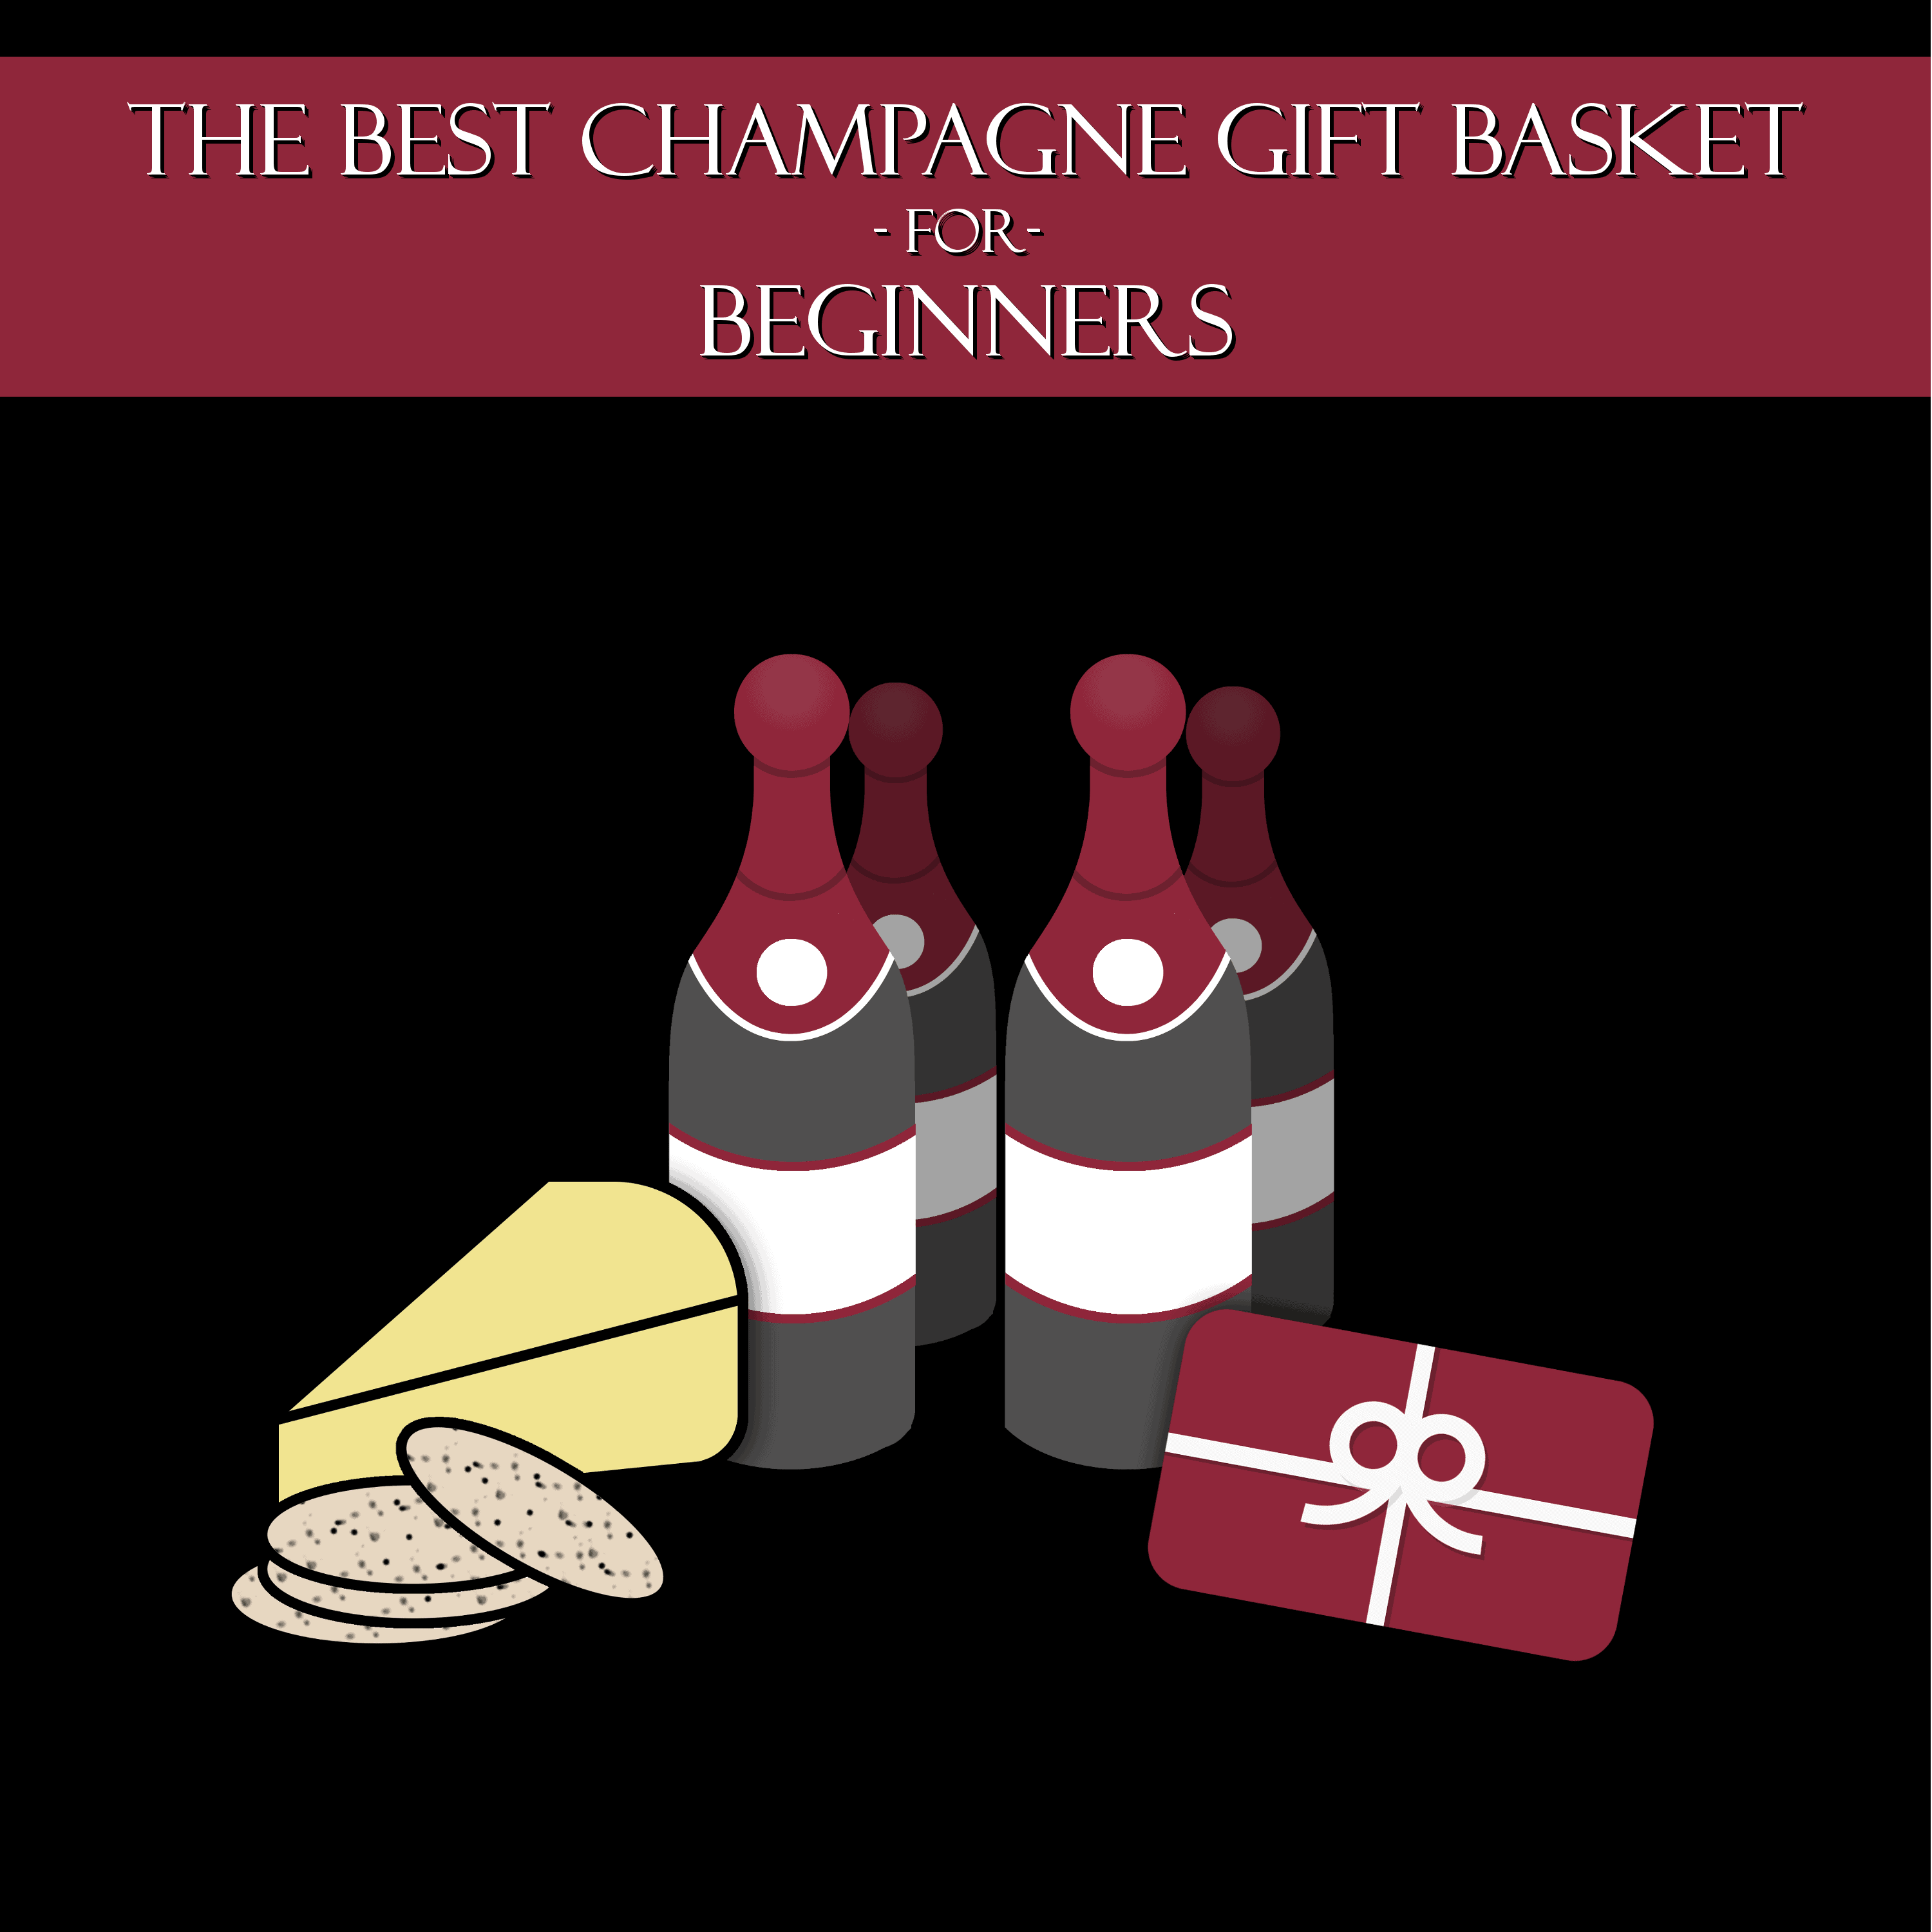 Ideas for a beginner's Champagne gift basket